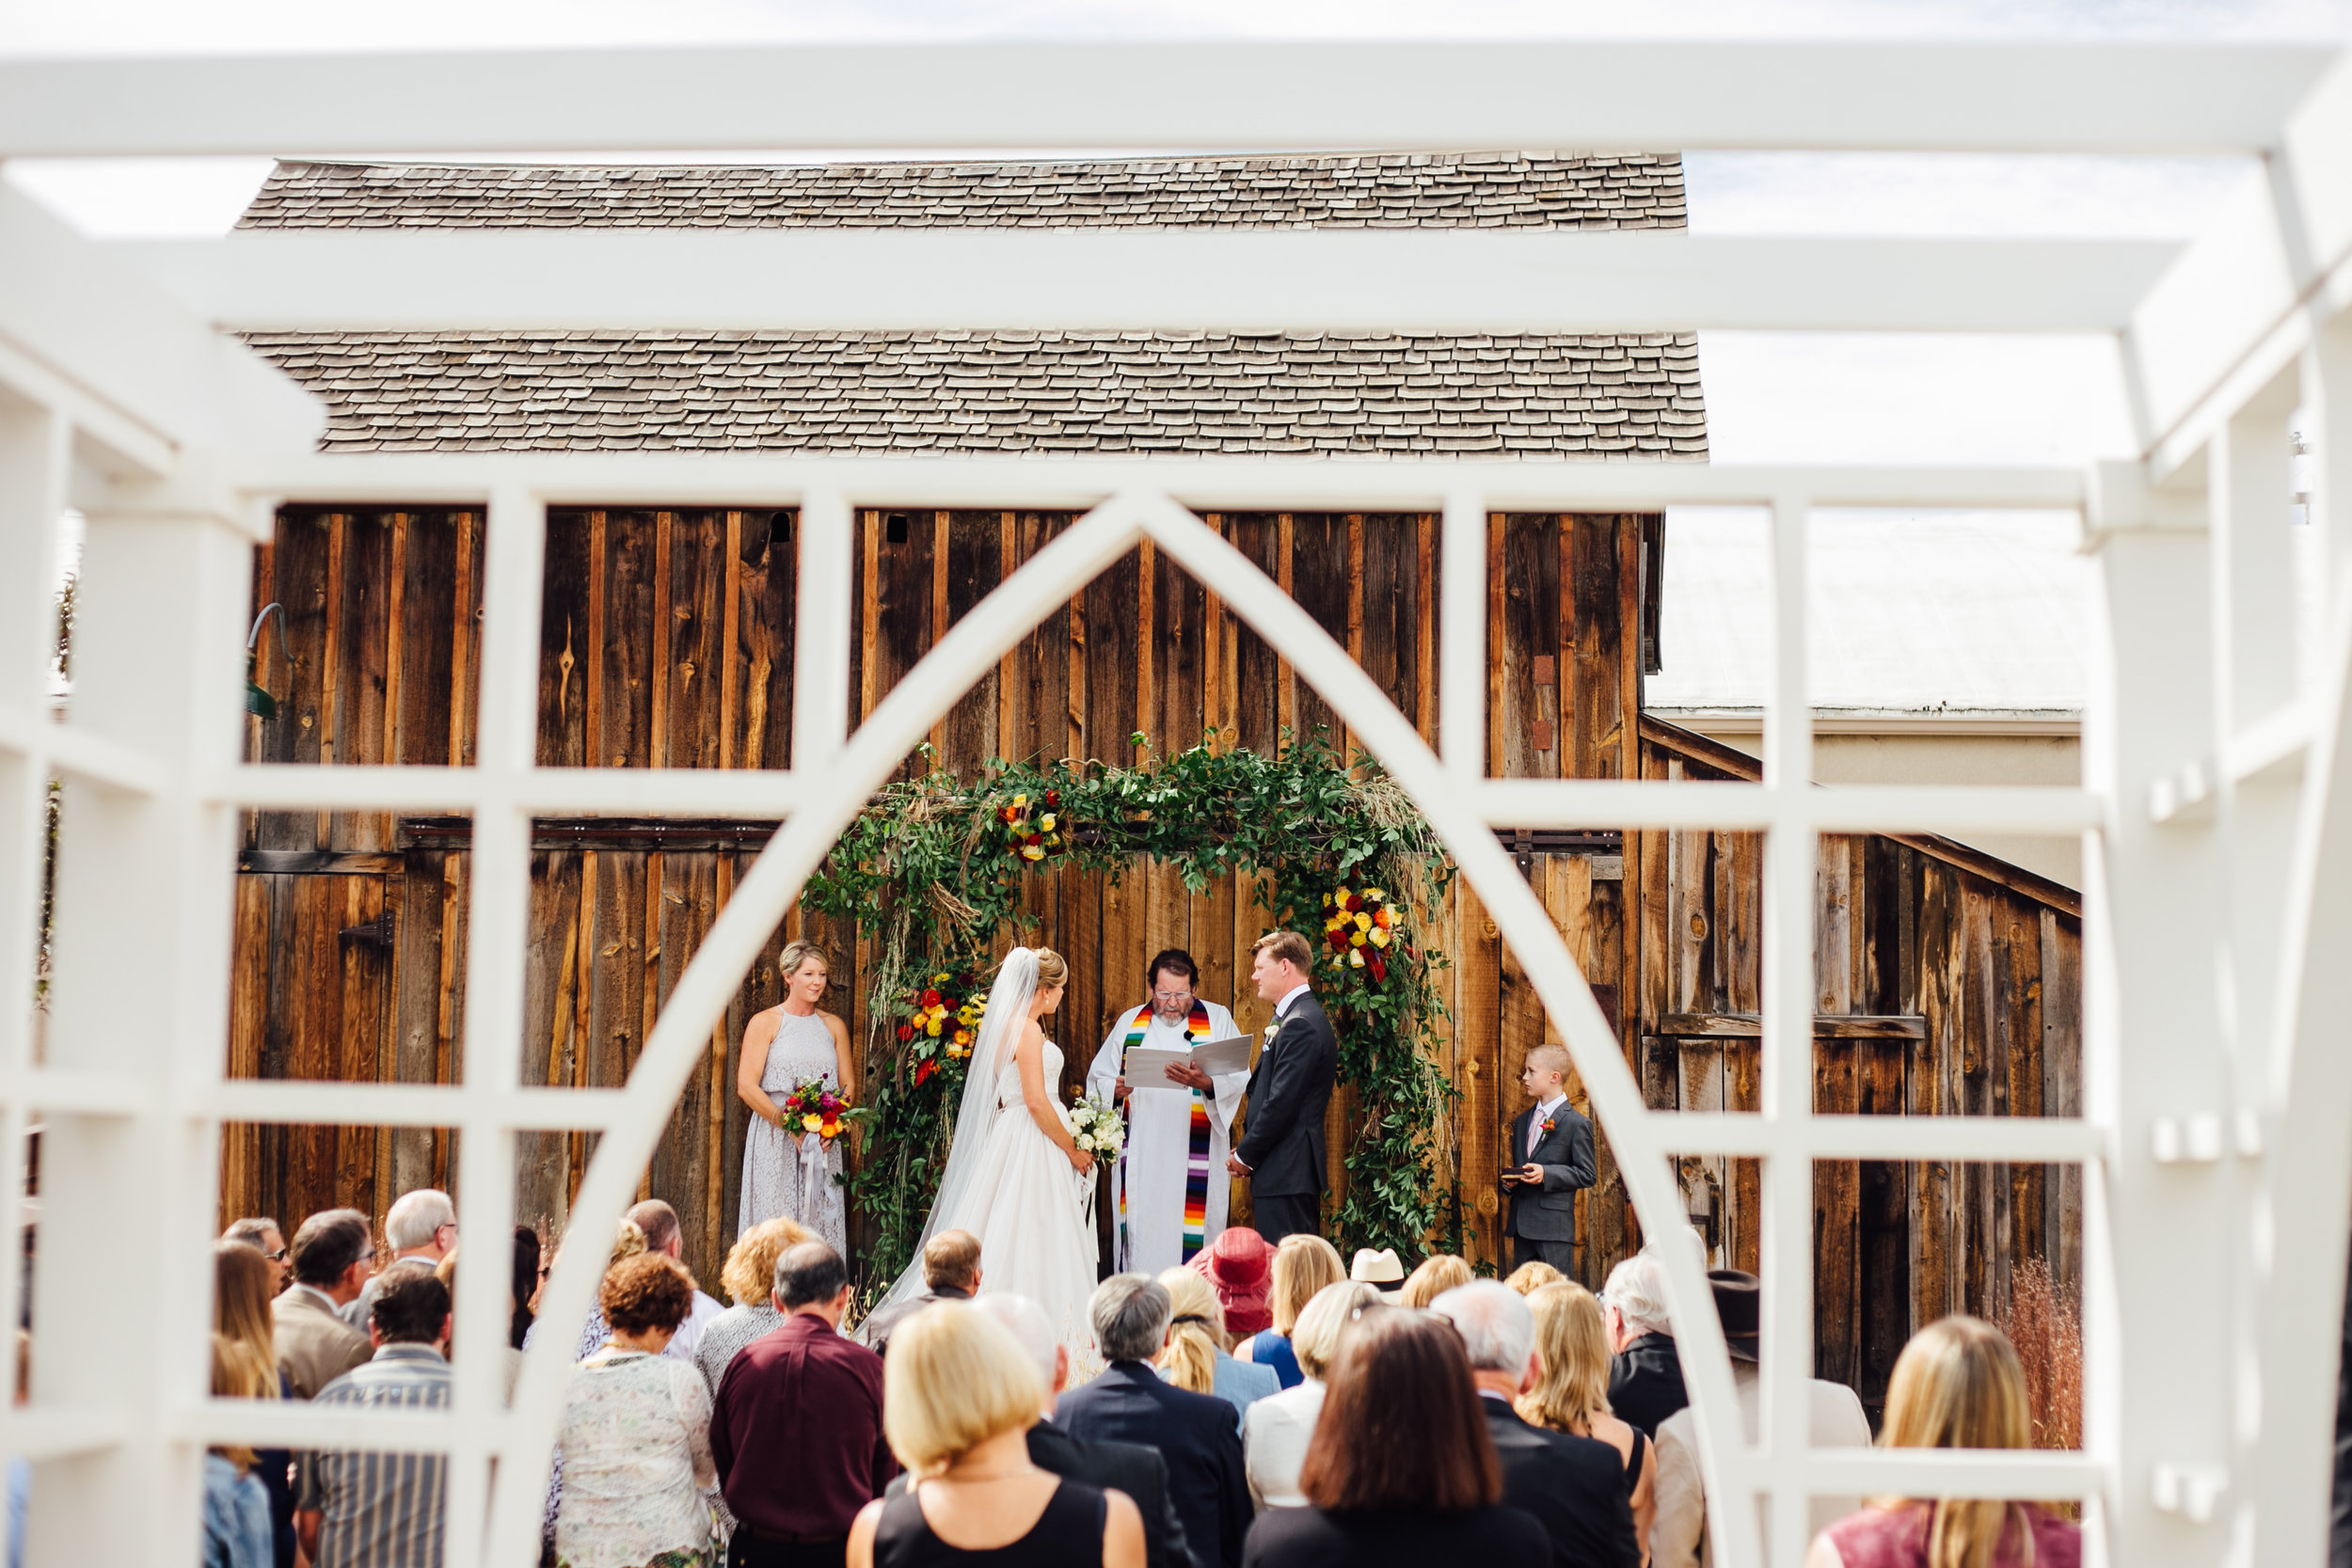 Bride and Groom, Wedding Ceremony, Lattice Window, Little Thompson Valley Pioneer Museum Berthoud Colorado Wedding